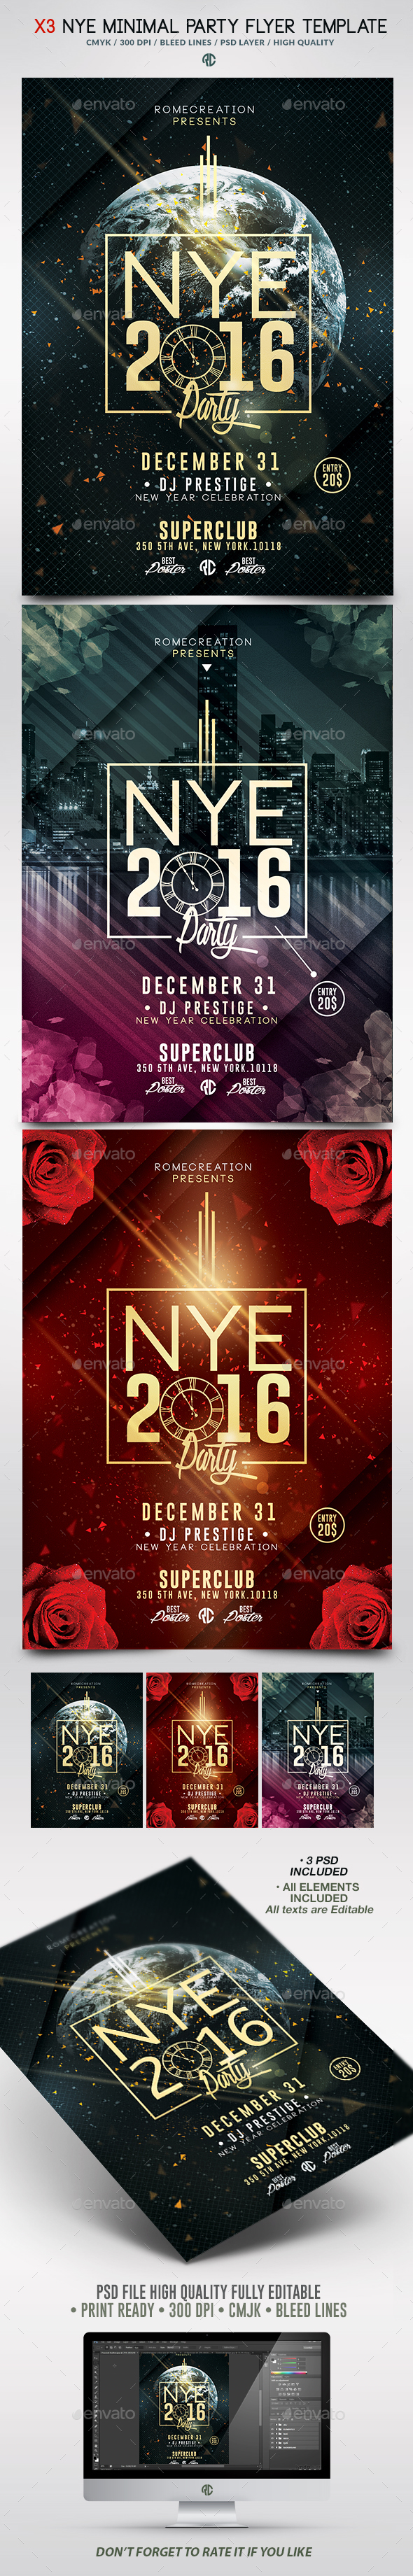 X3 NYE Minimal Party | Psd Poster Template  - Events Flyers